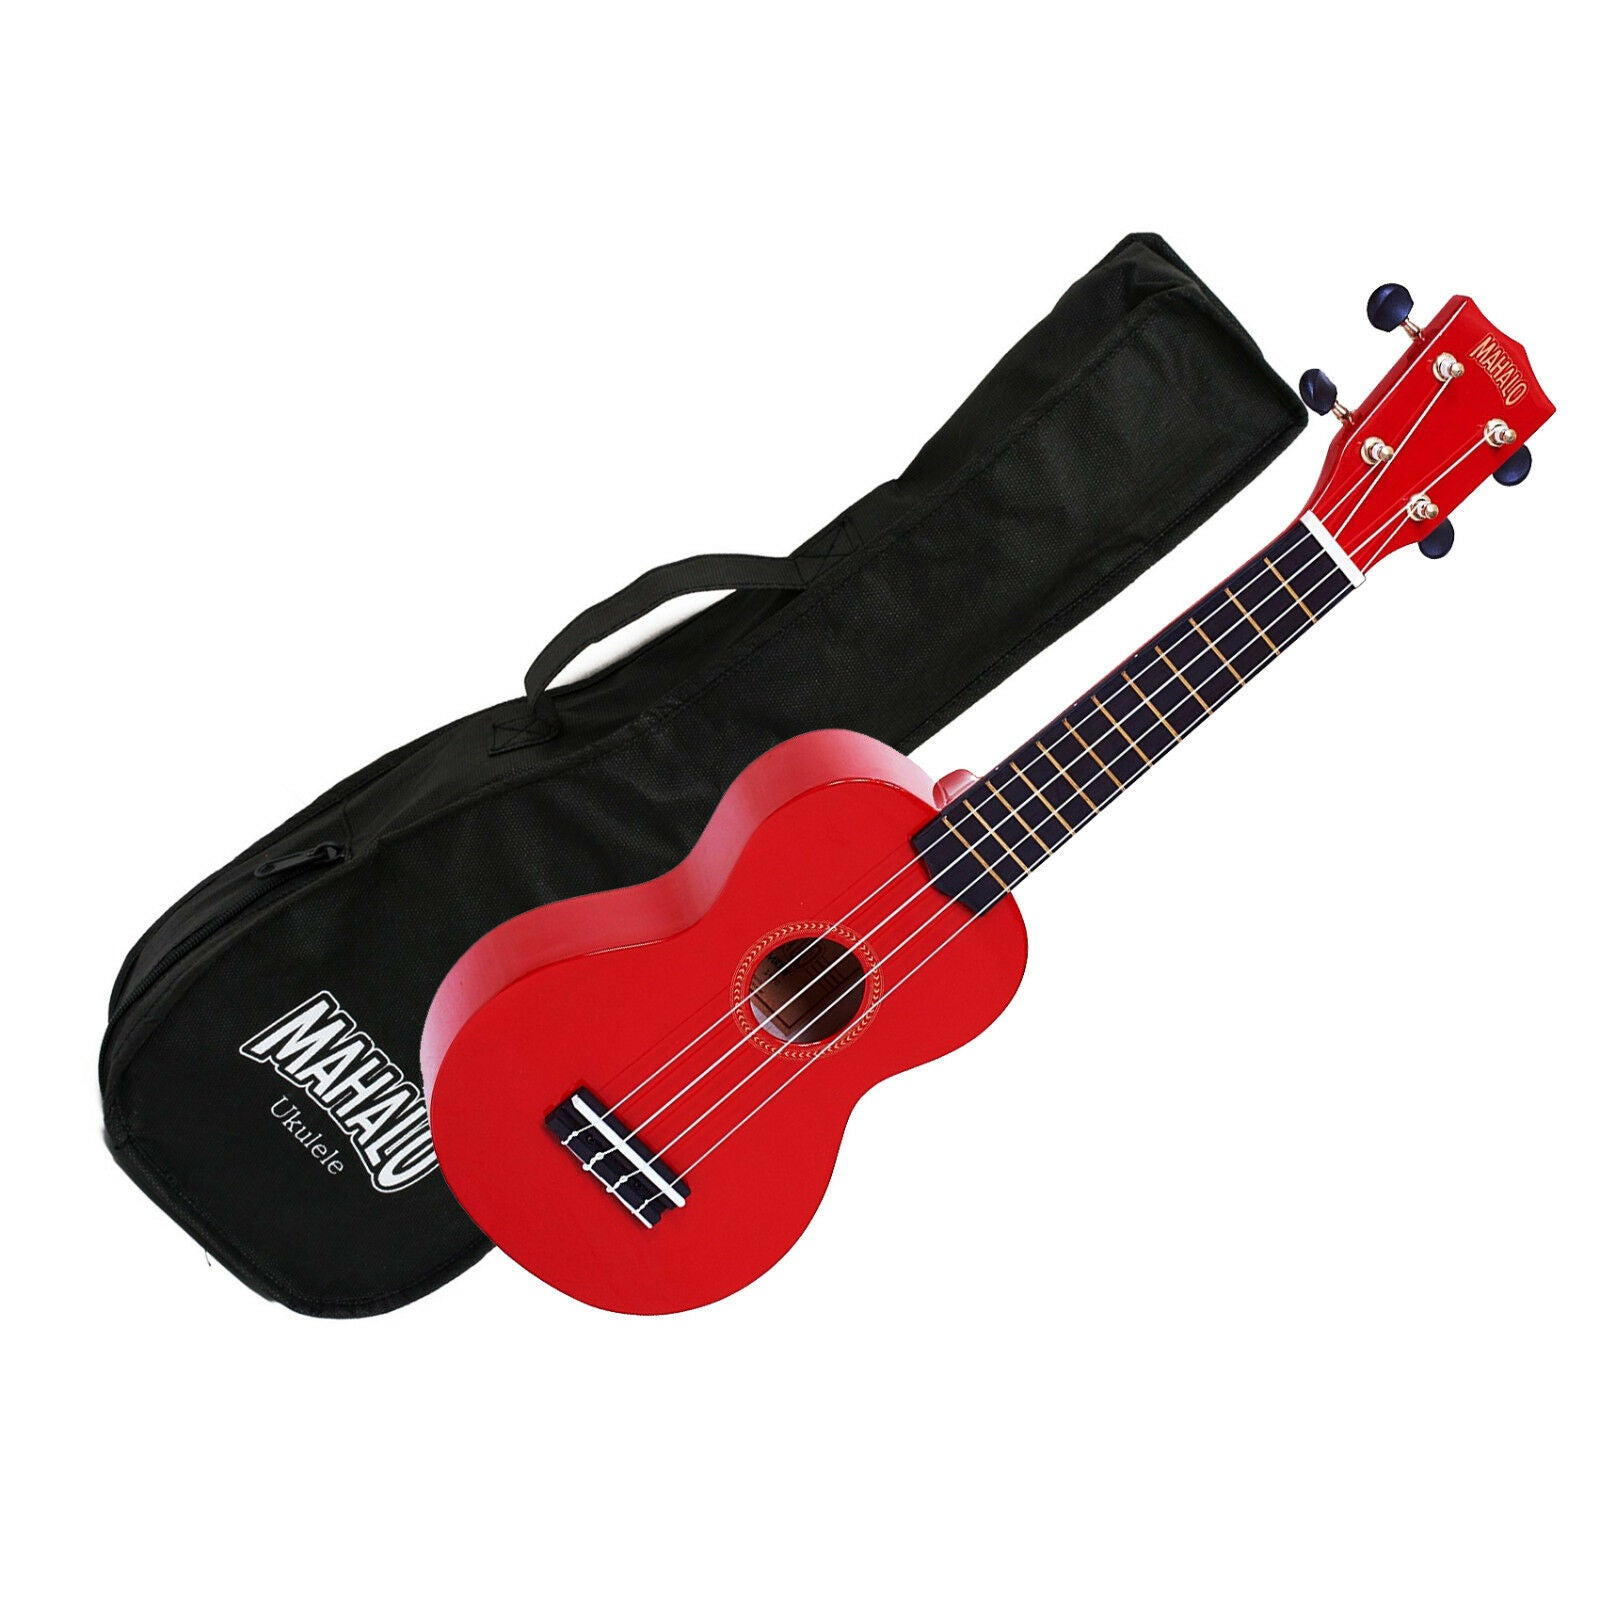 Mahalo MR1-RD Soprano Ukulele w/ Bag - Red